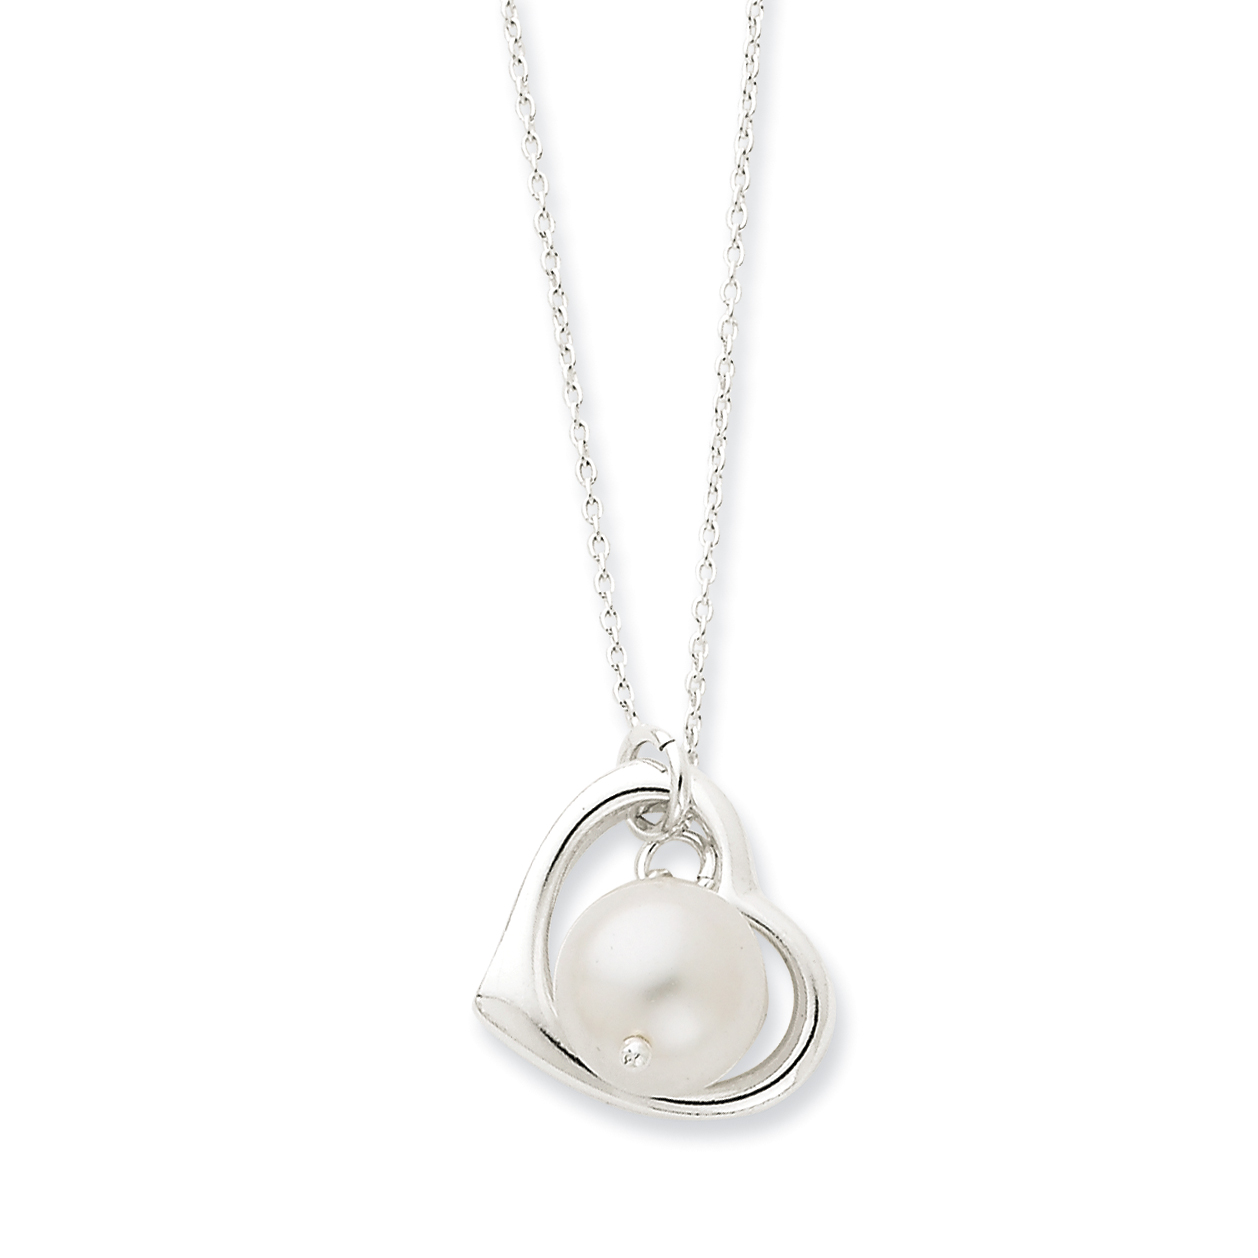 925 Sterling Silver and Simulated Pearl Polished Heart Necklace 18 Inch - image 2 de 3